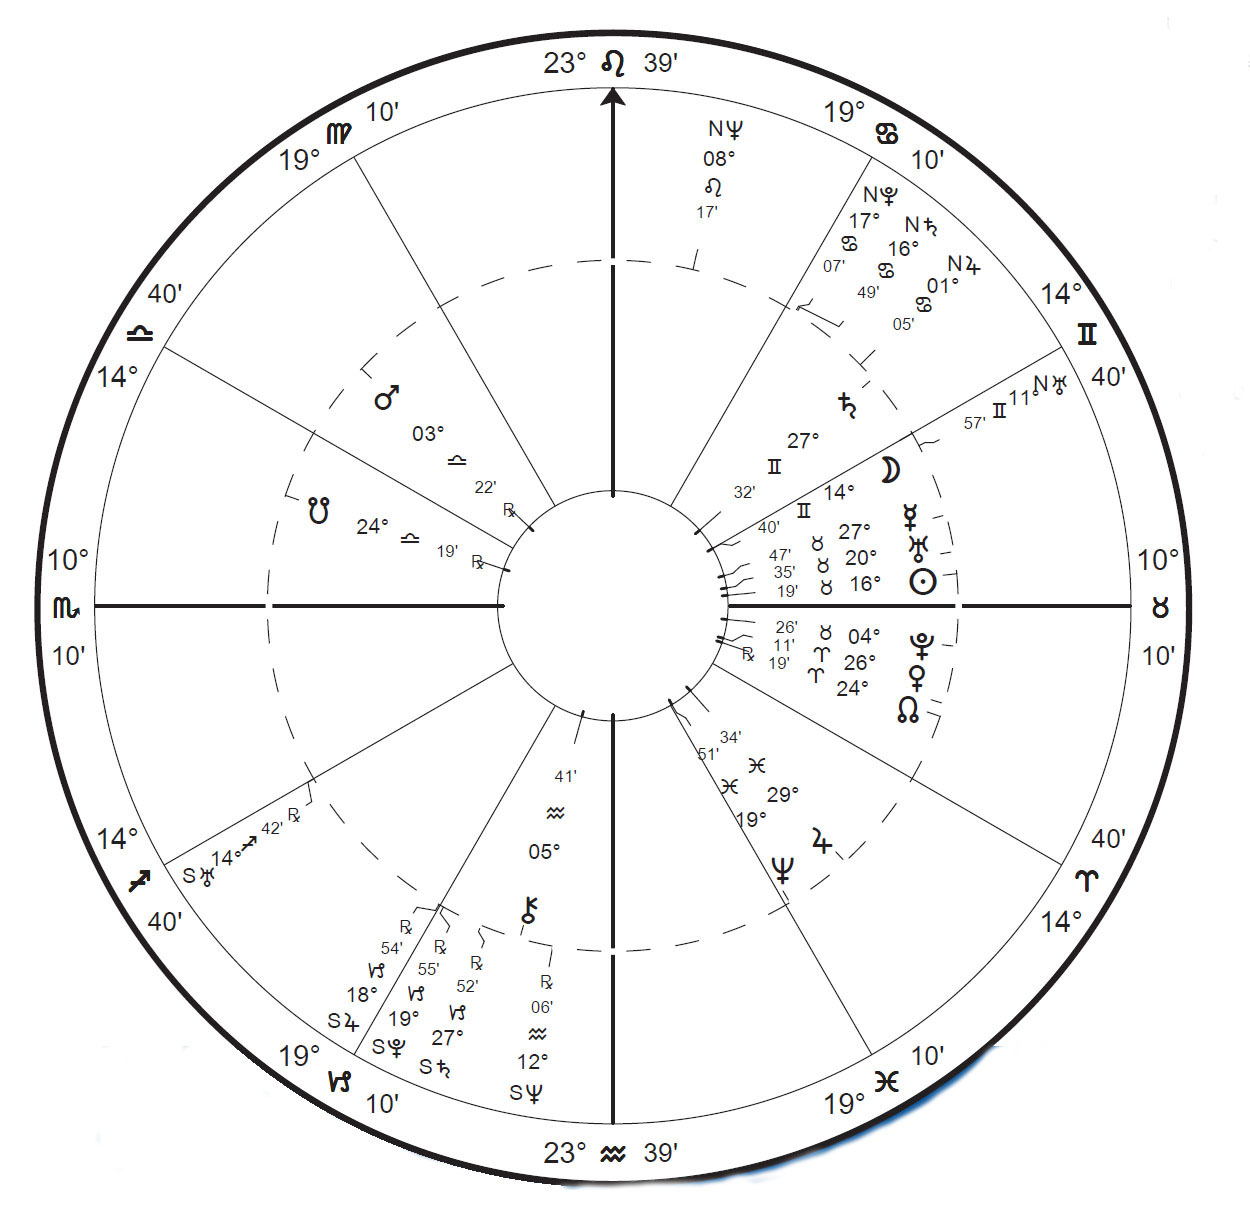 The space between the stars the nature and function of the sigmund freud had the natal moon at 1440 gemini conjunct the north node of uranus 1157 right on the cusp of the 8th house see chart at above nvjuhfo Images